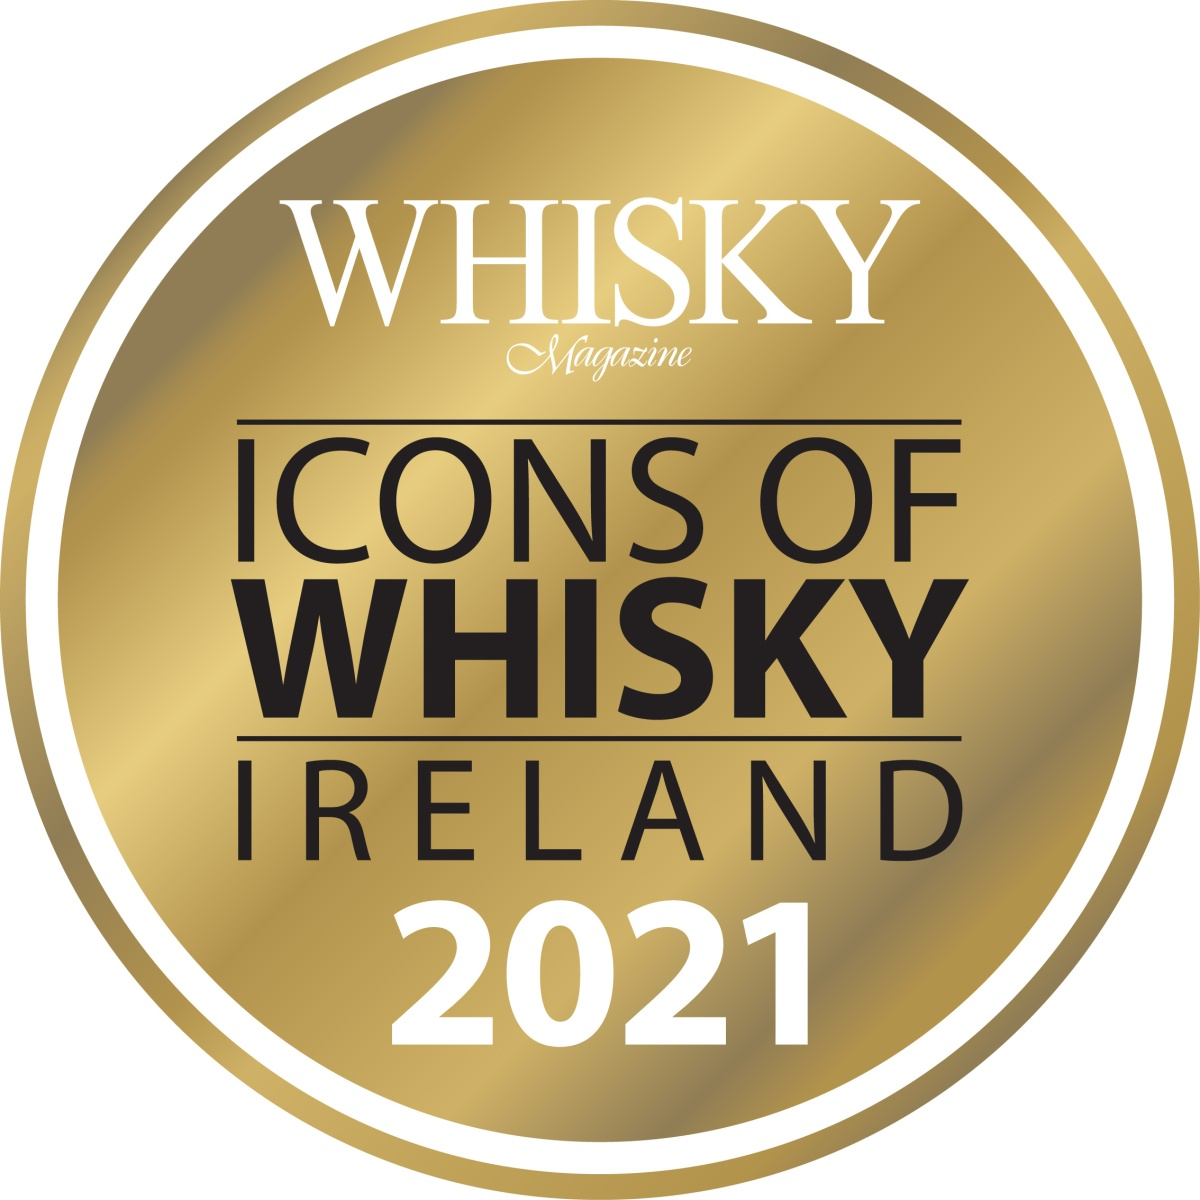 Icons of Whisky Ireland 2021 winners announced